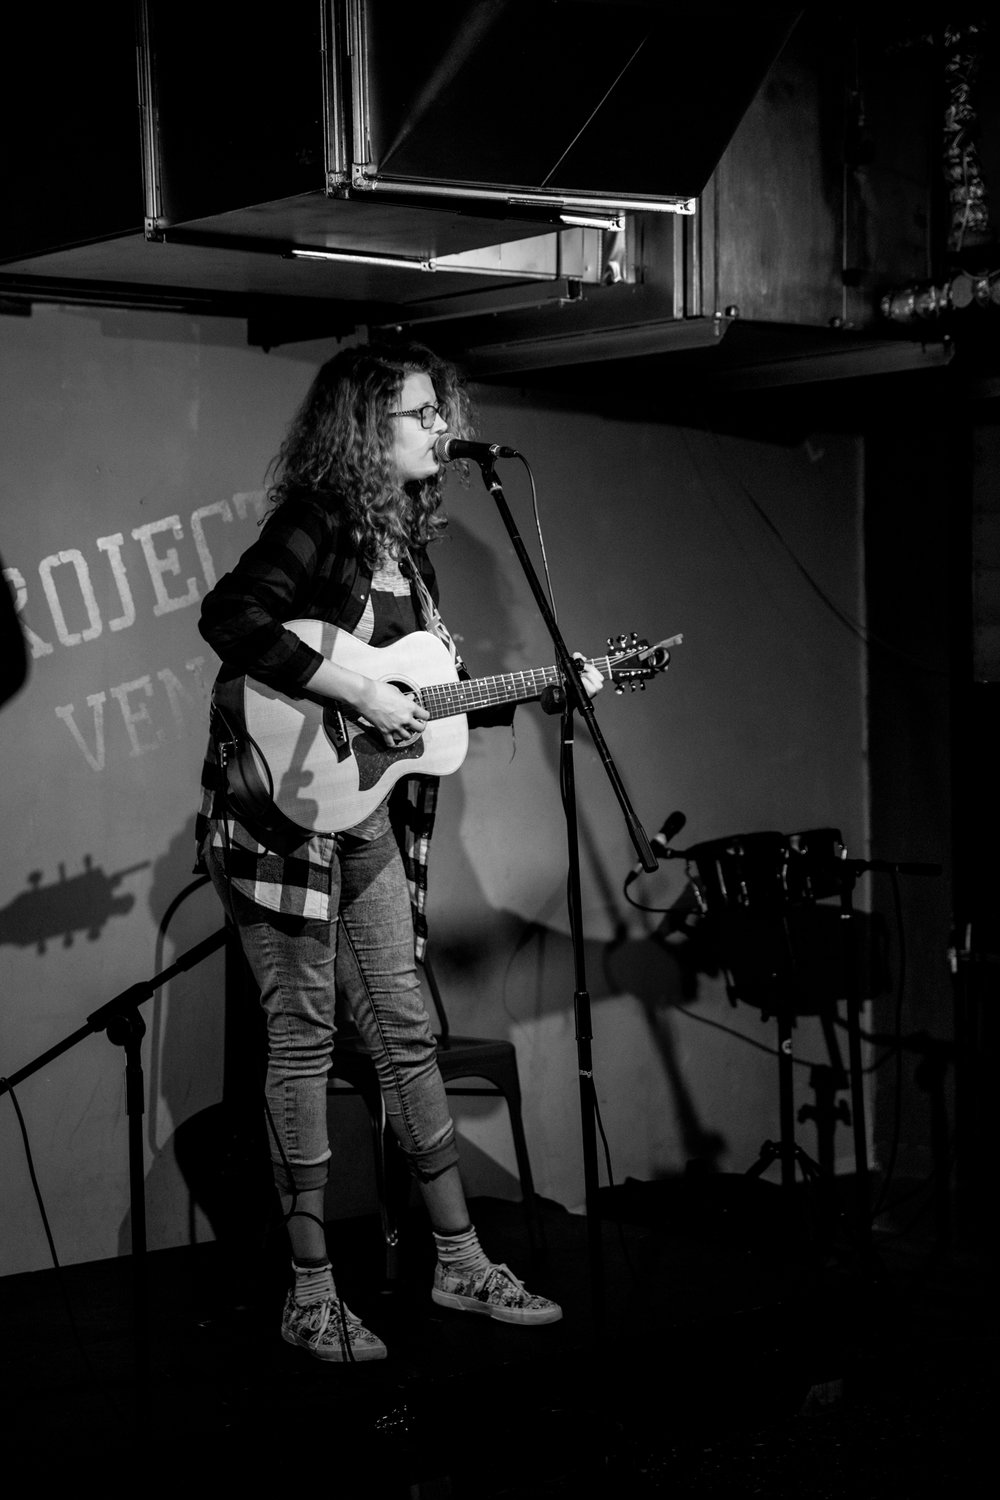 London Open Mic Night Chloe Ray Long Island Photographer-62.jpg